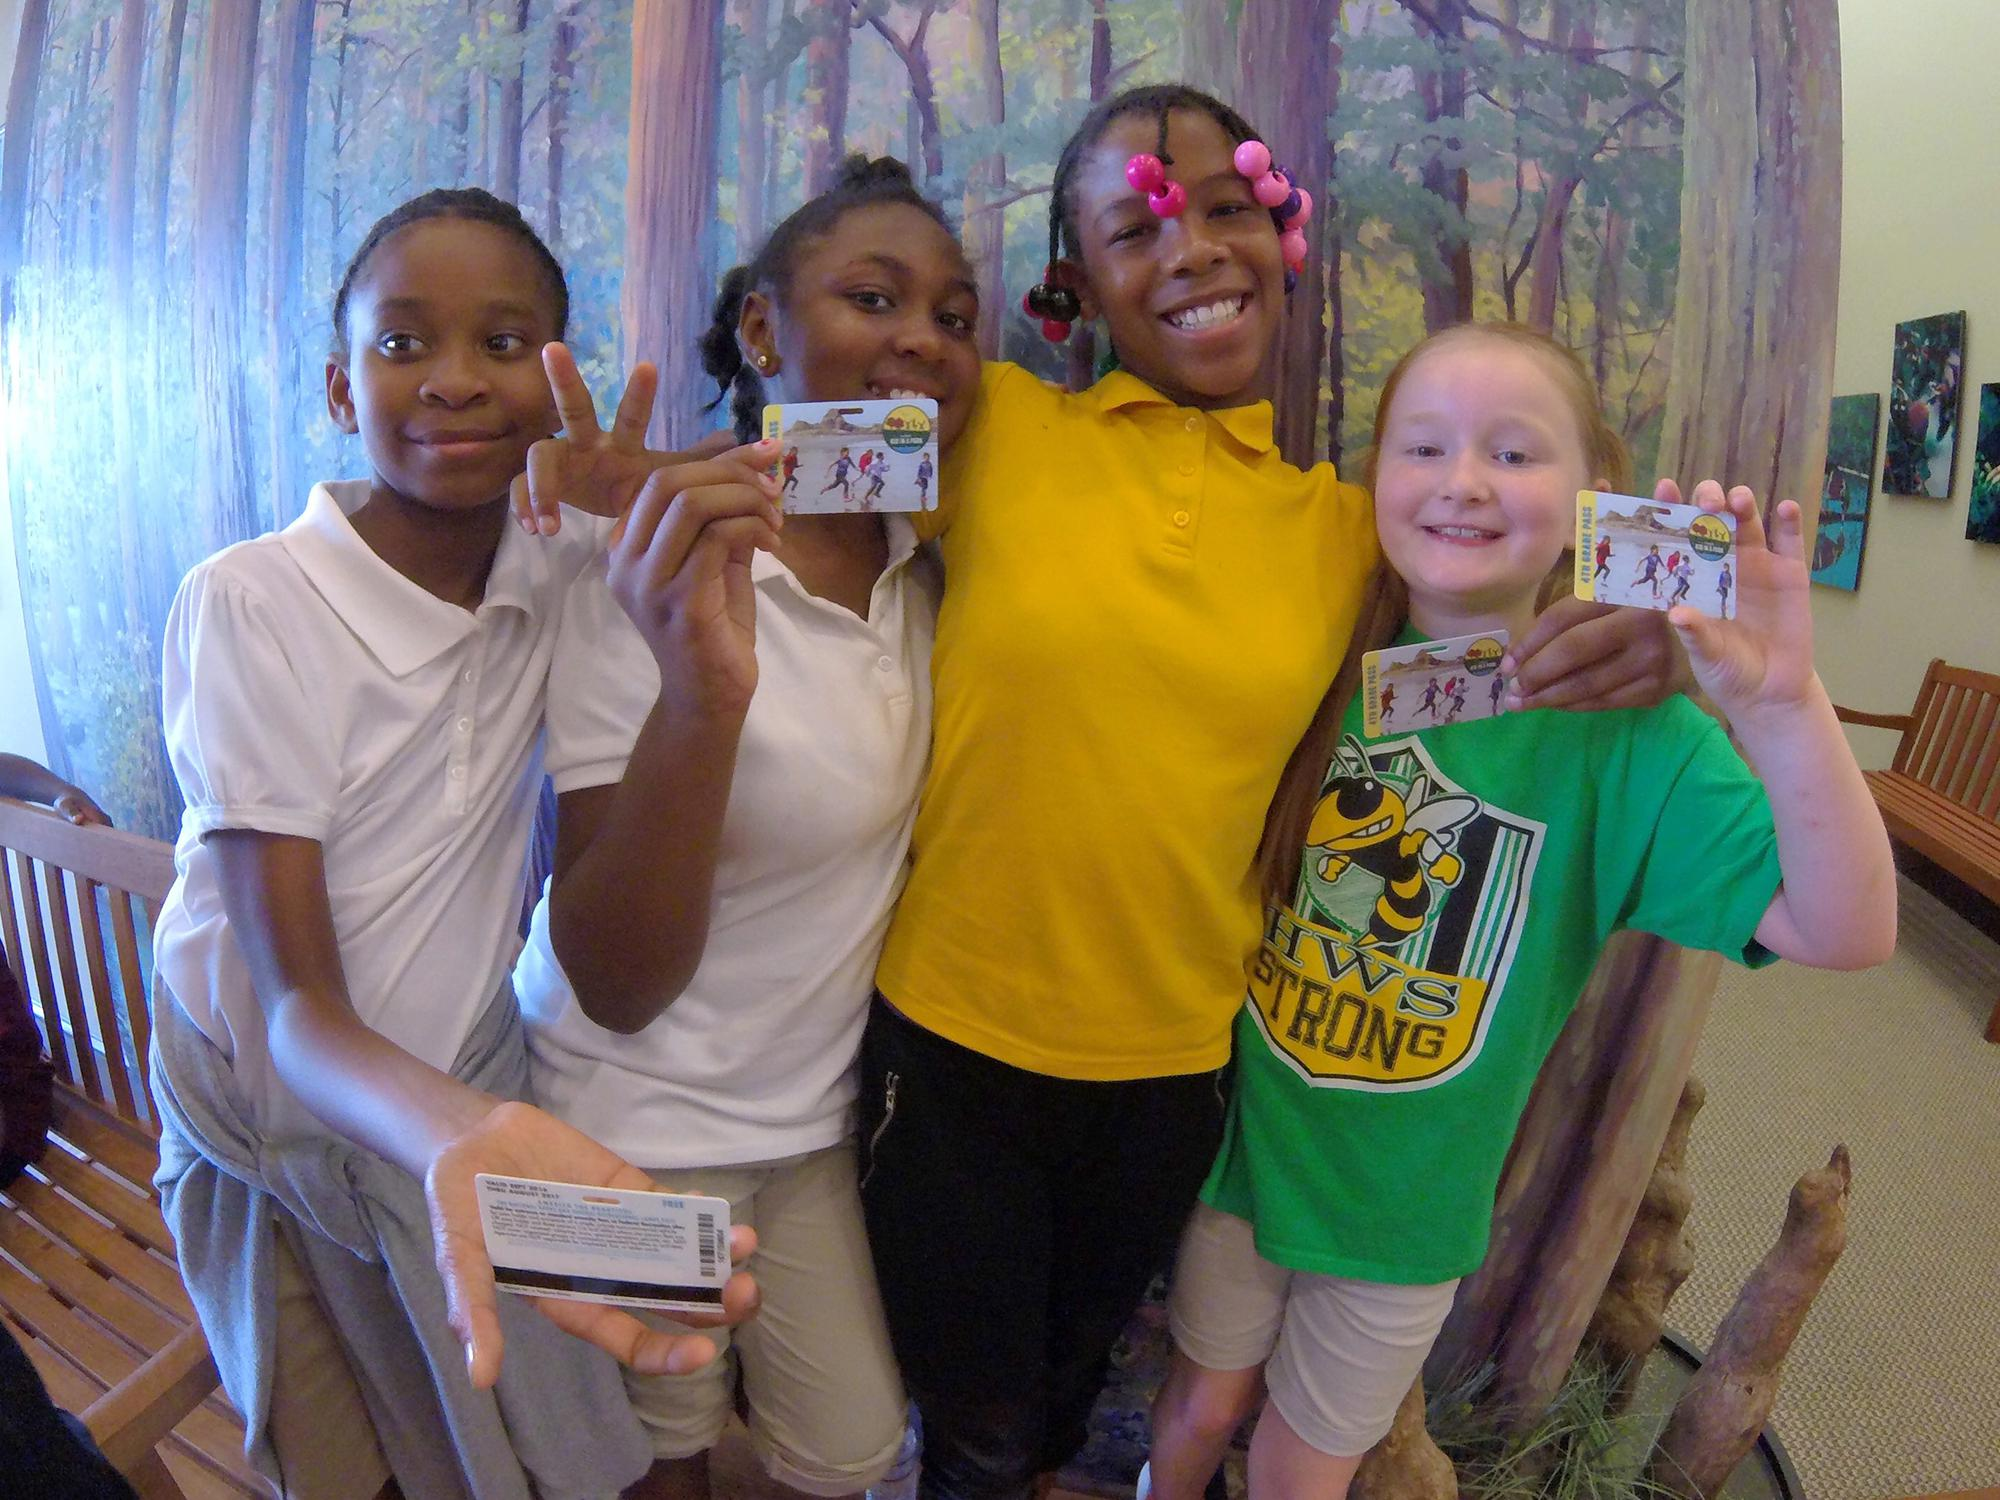 Four fourth-grade girls show off their personal identification cards that are passes to federal parks.